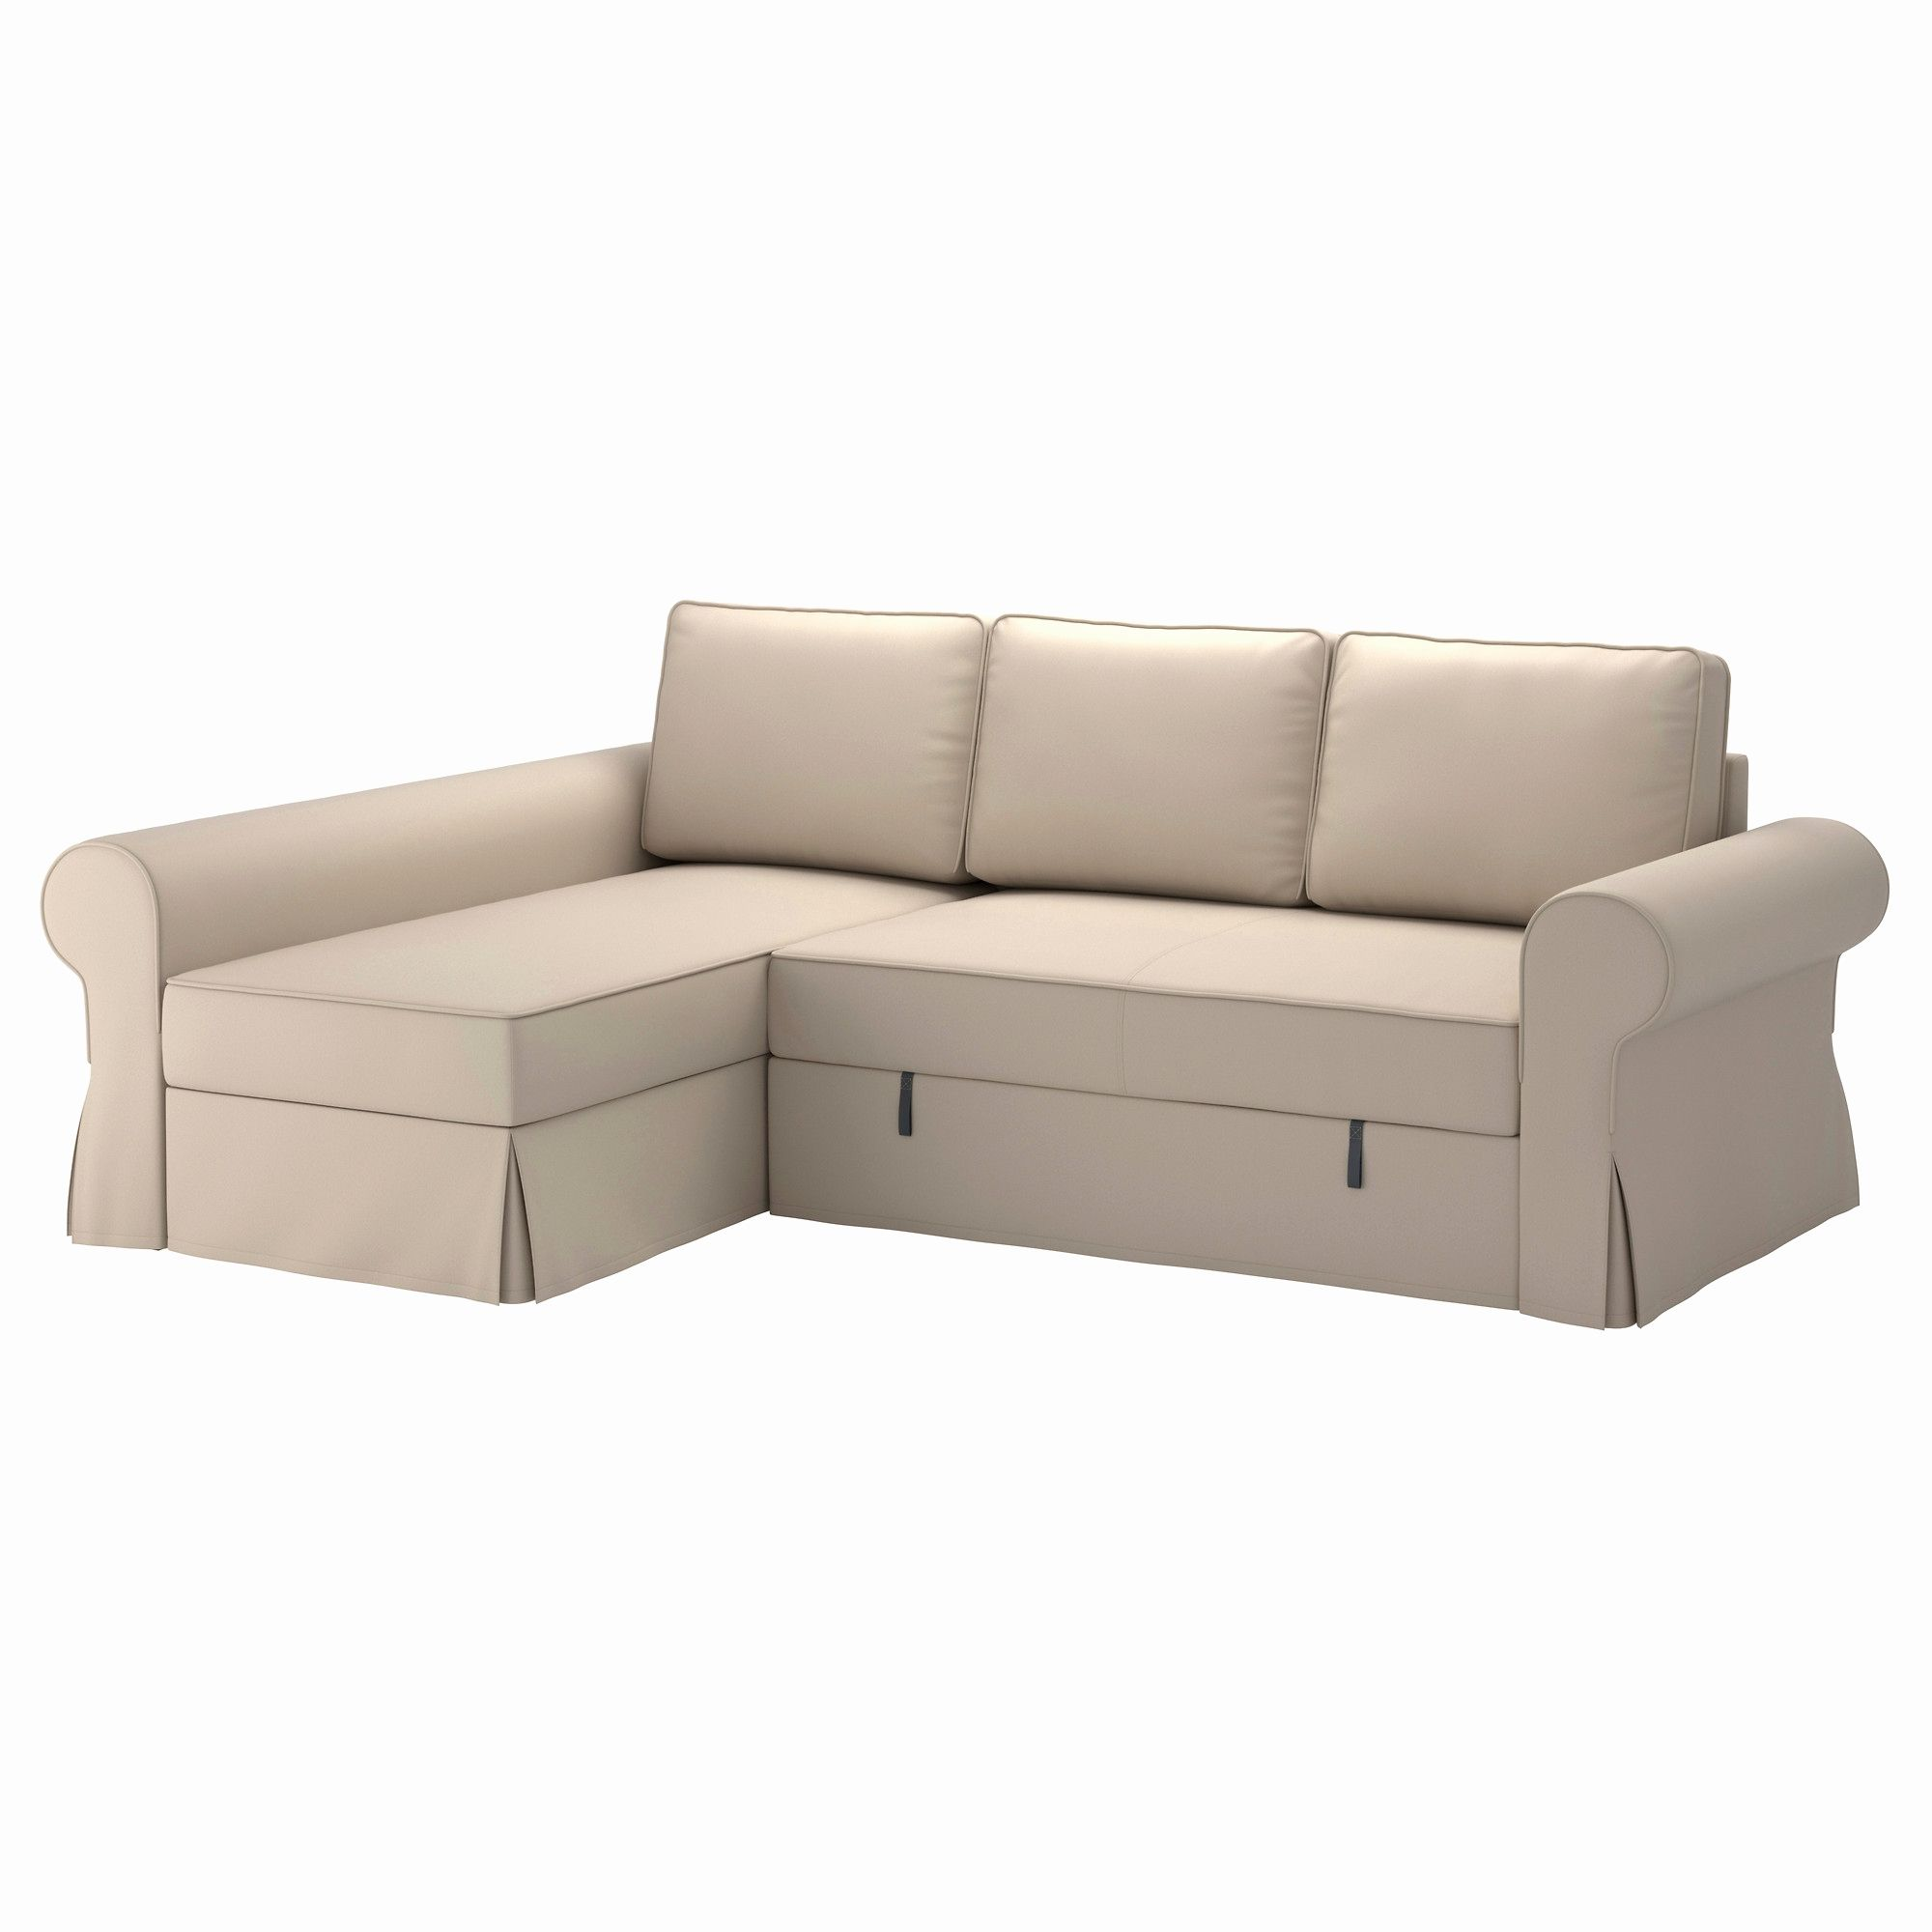 Good Sofa Bed Corner Lounge Art Sofa Bed Corner Lounge